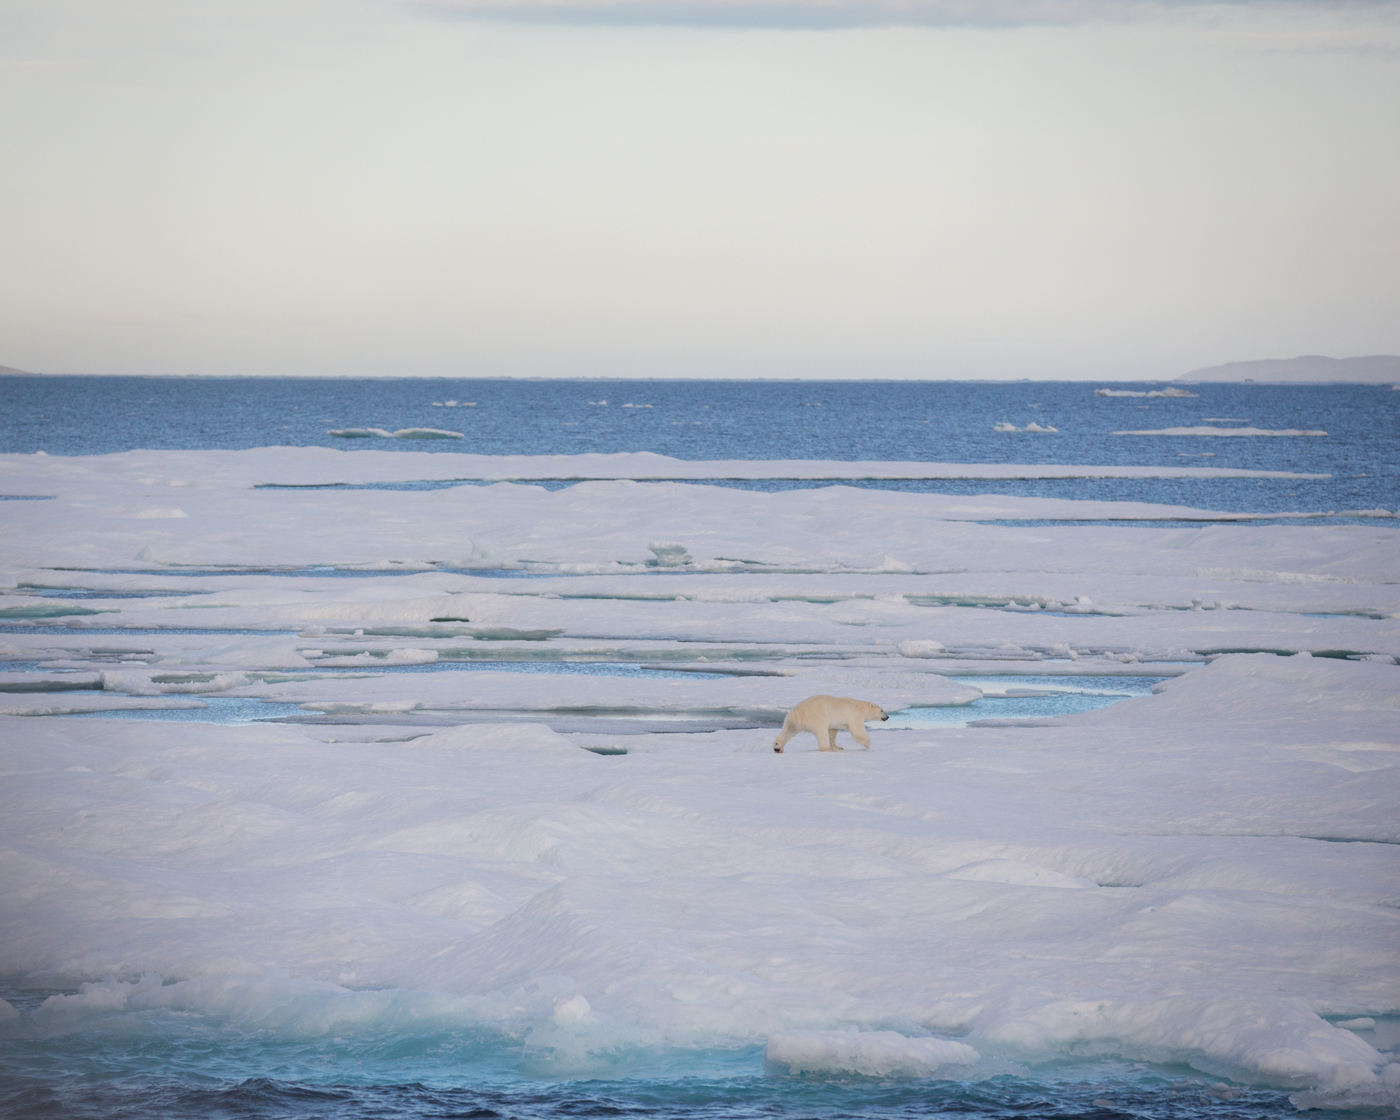 Polar Bear in the Canadian Arctic - Photo by Acacia Johnson